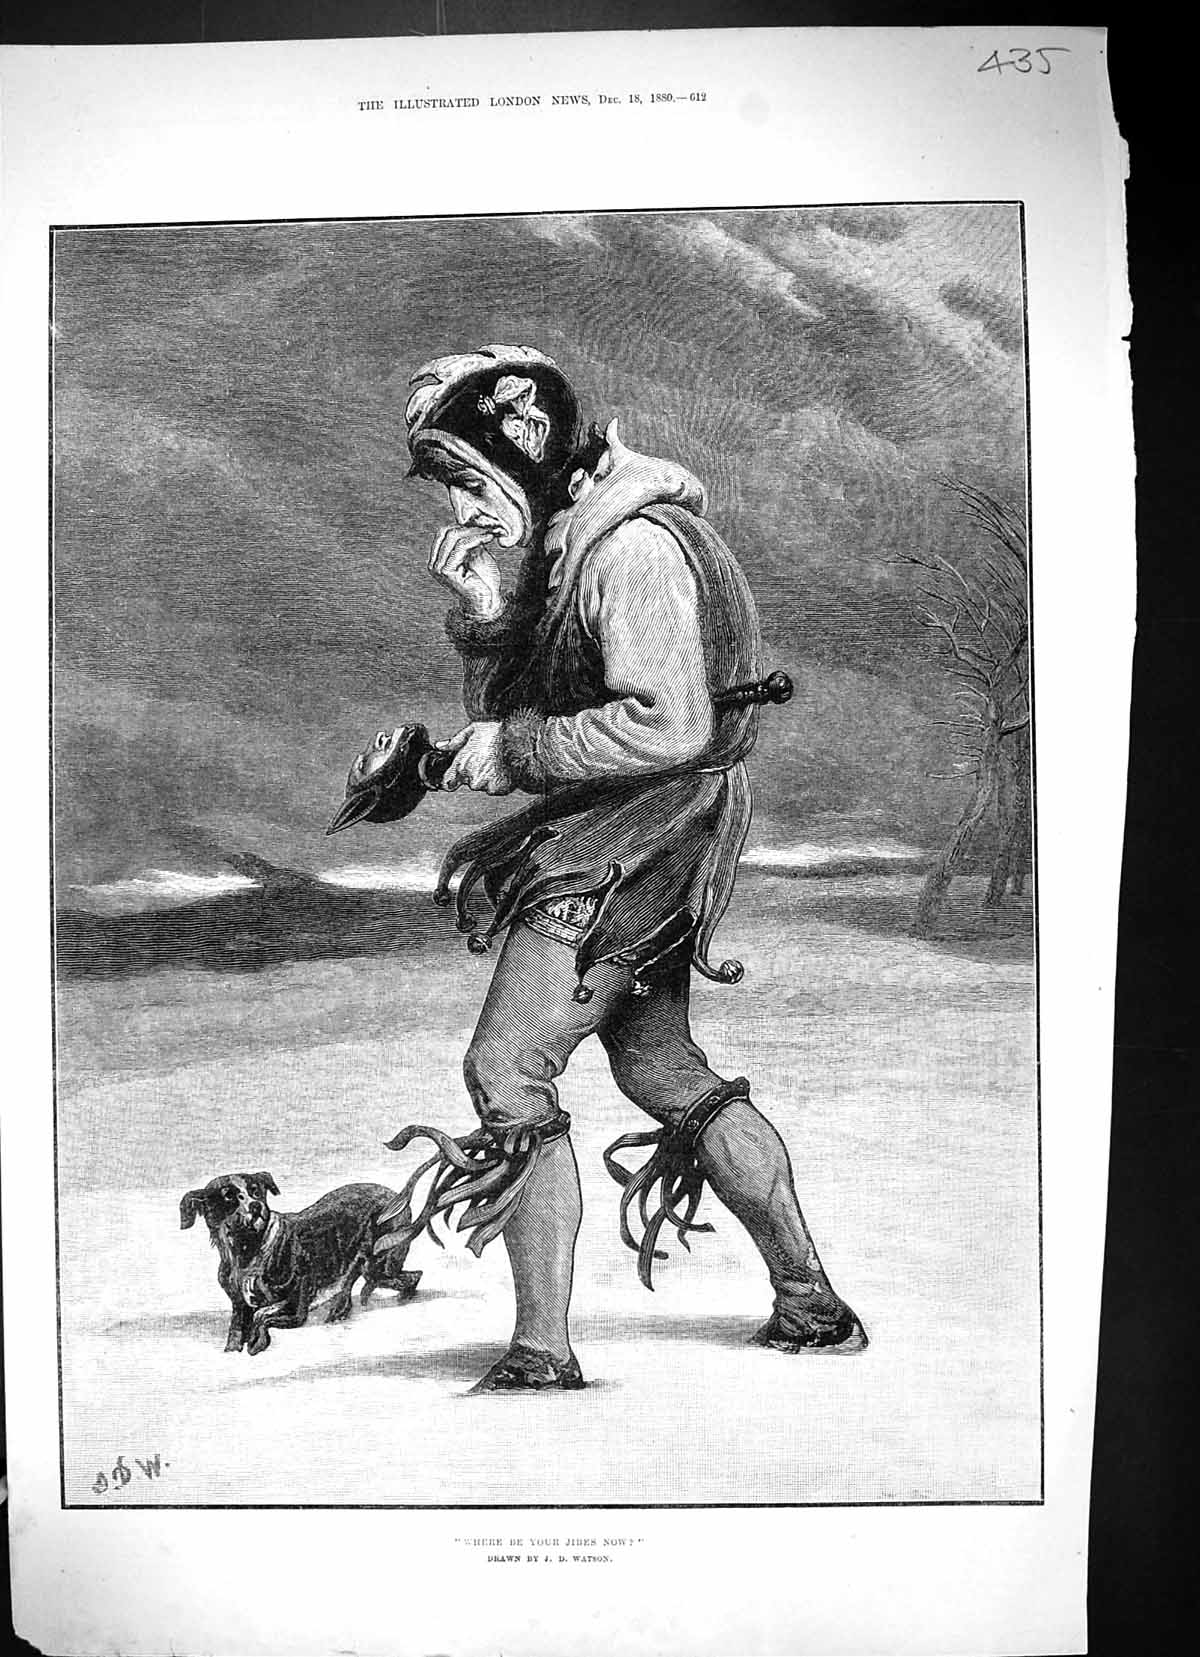 [Print 1880 Snow Scene Jester Costume Dog Where Be Your Jibes Now Watson 435J508 Old Original]